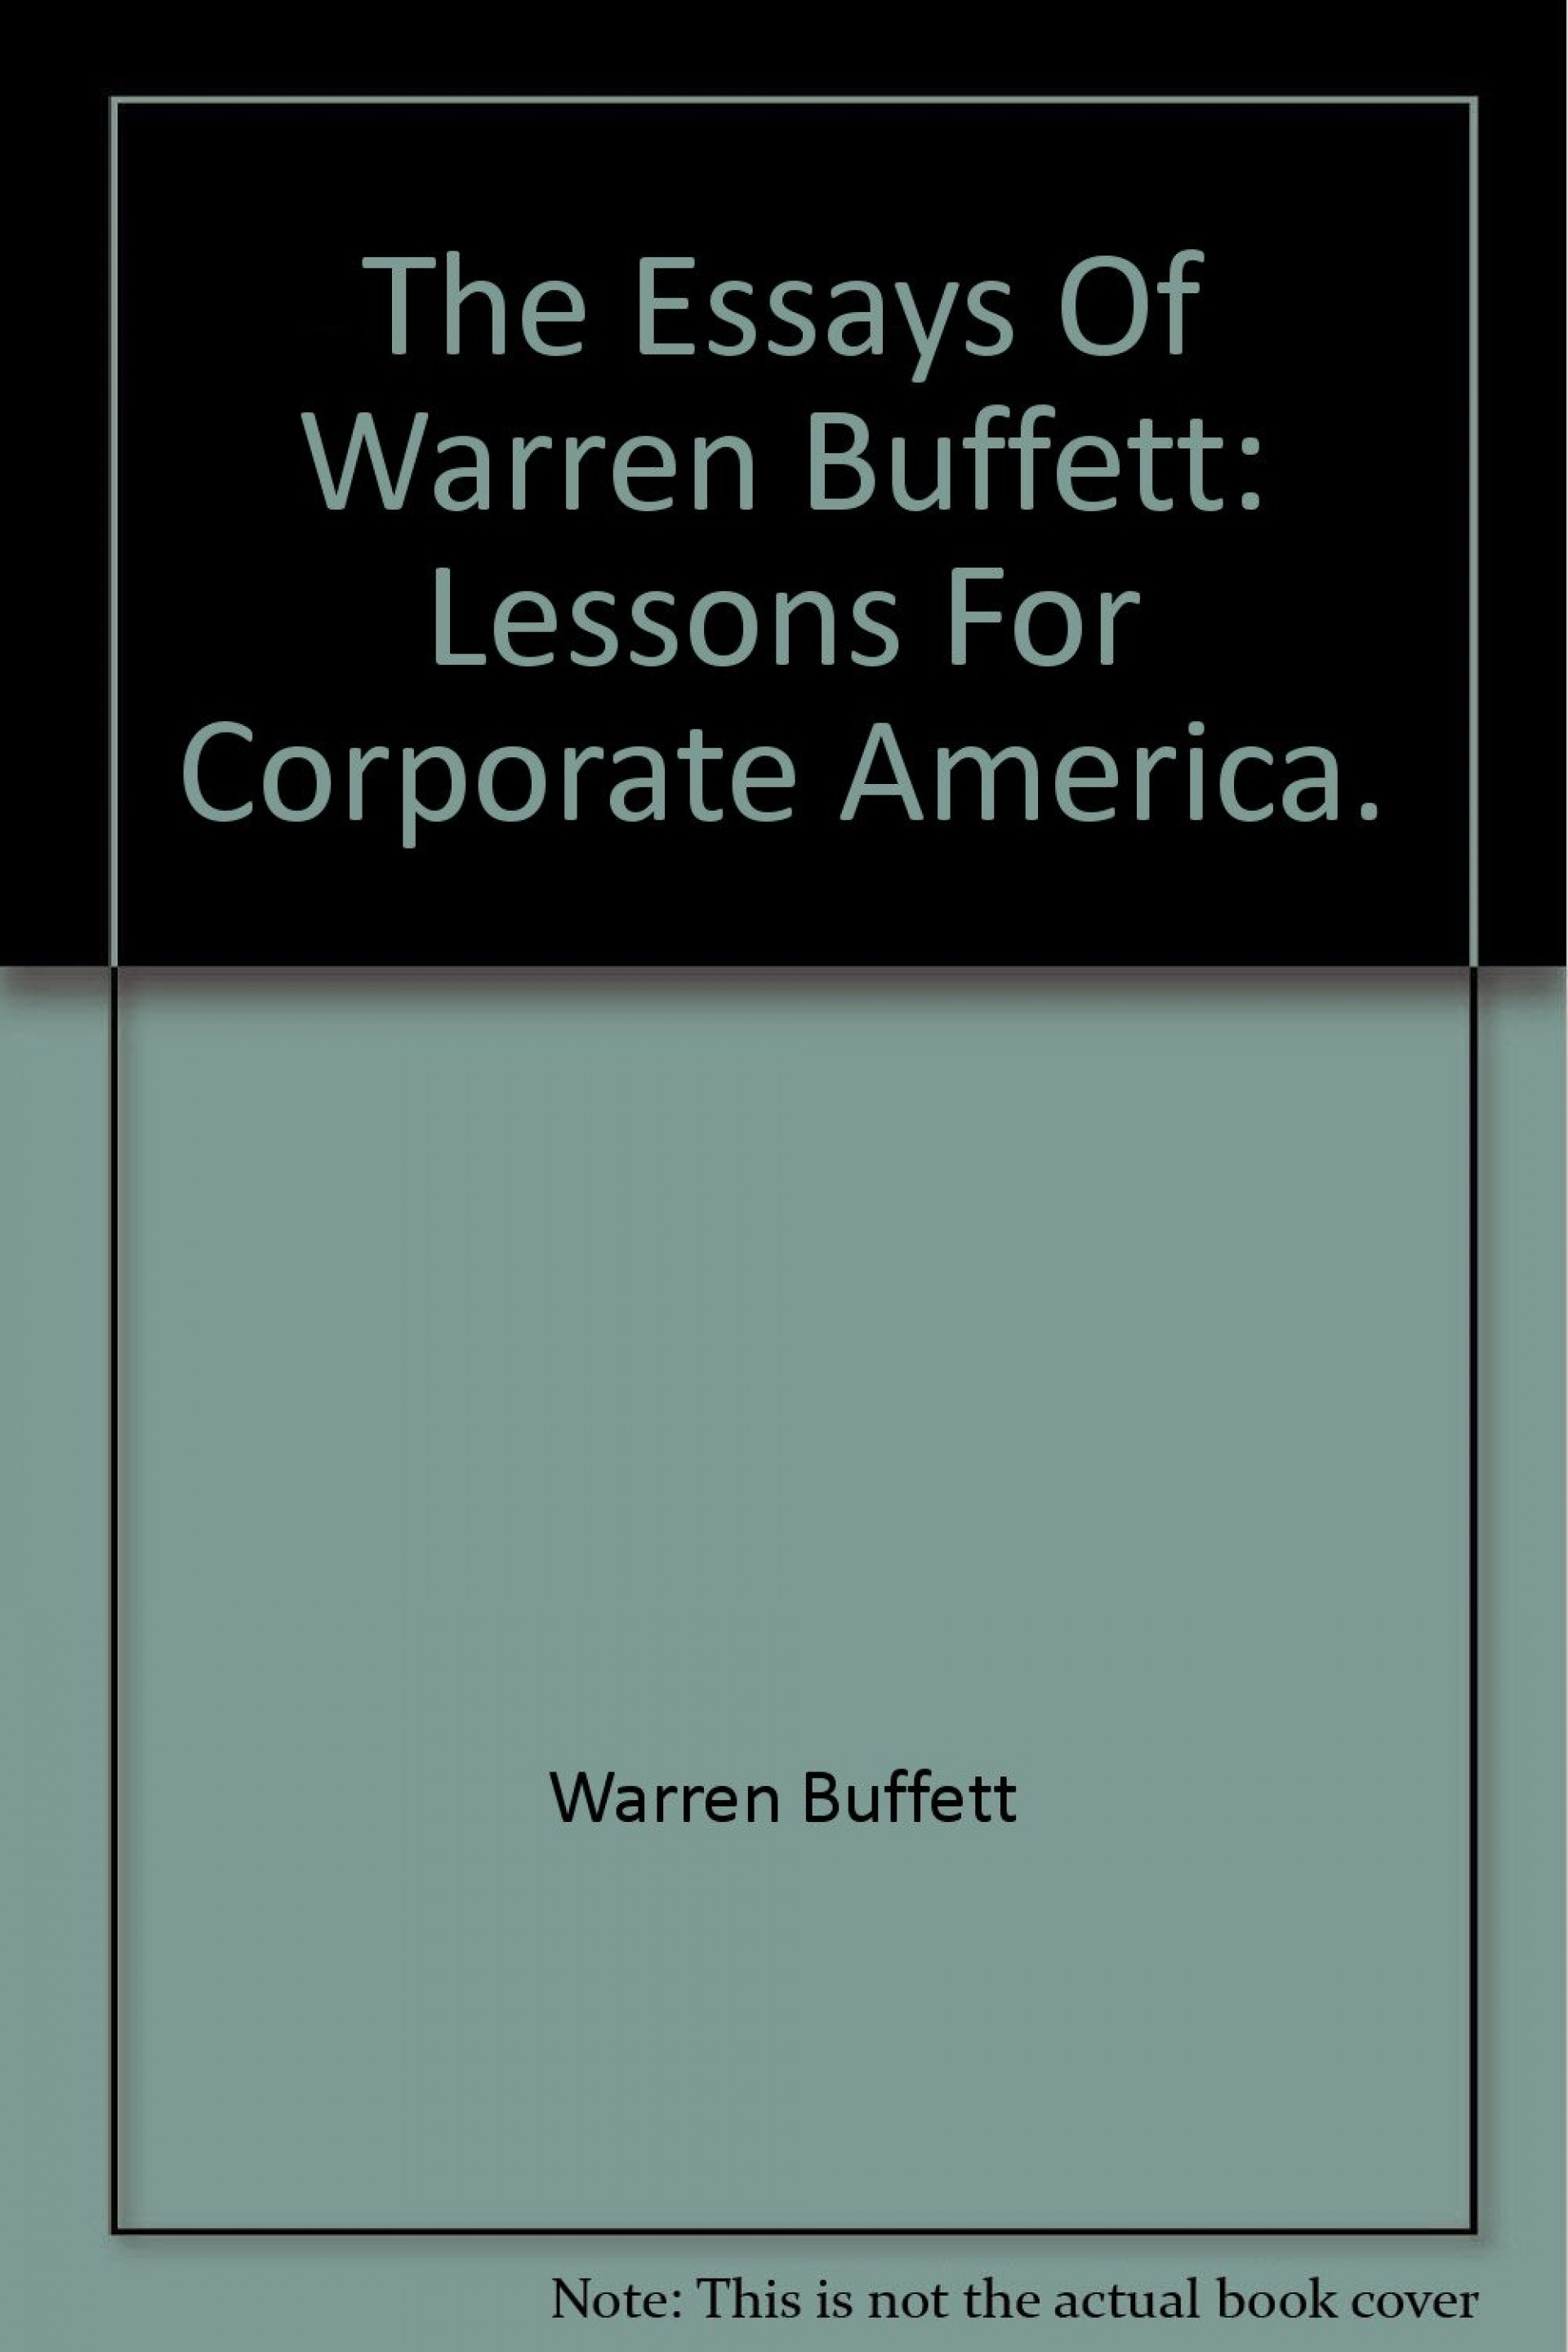 006 61wo12biiixl The Essays Of Warren Buffett Lessons For Corporate America Essay Remarkable Third Edition 3rd Second Pdf Audio Book 1920